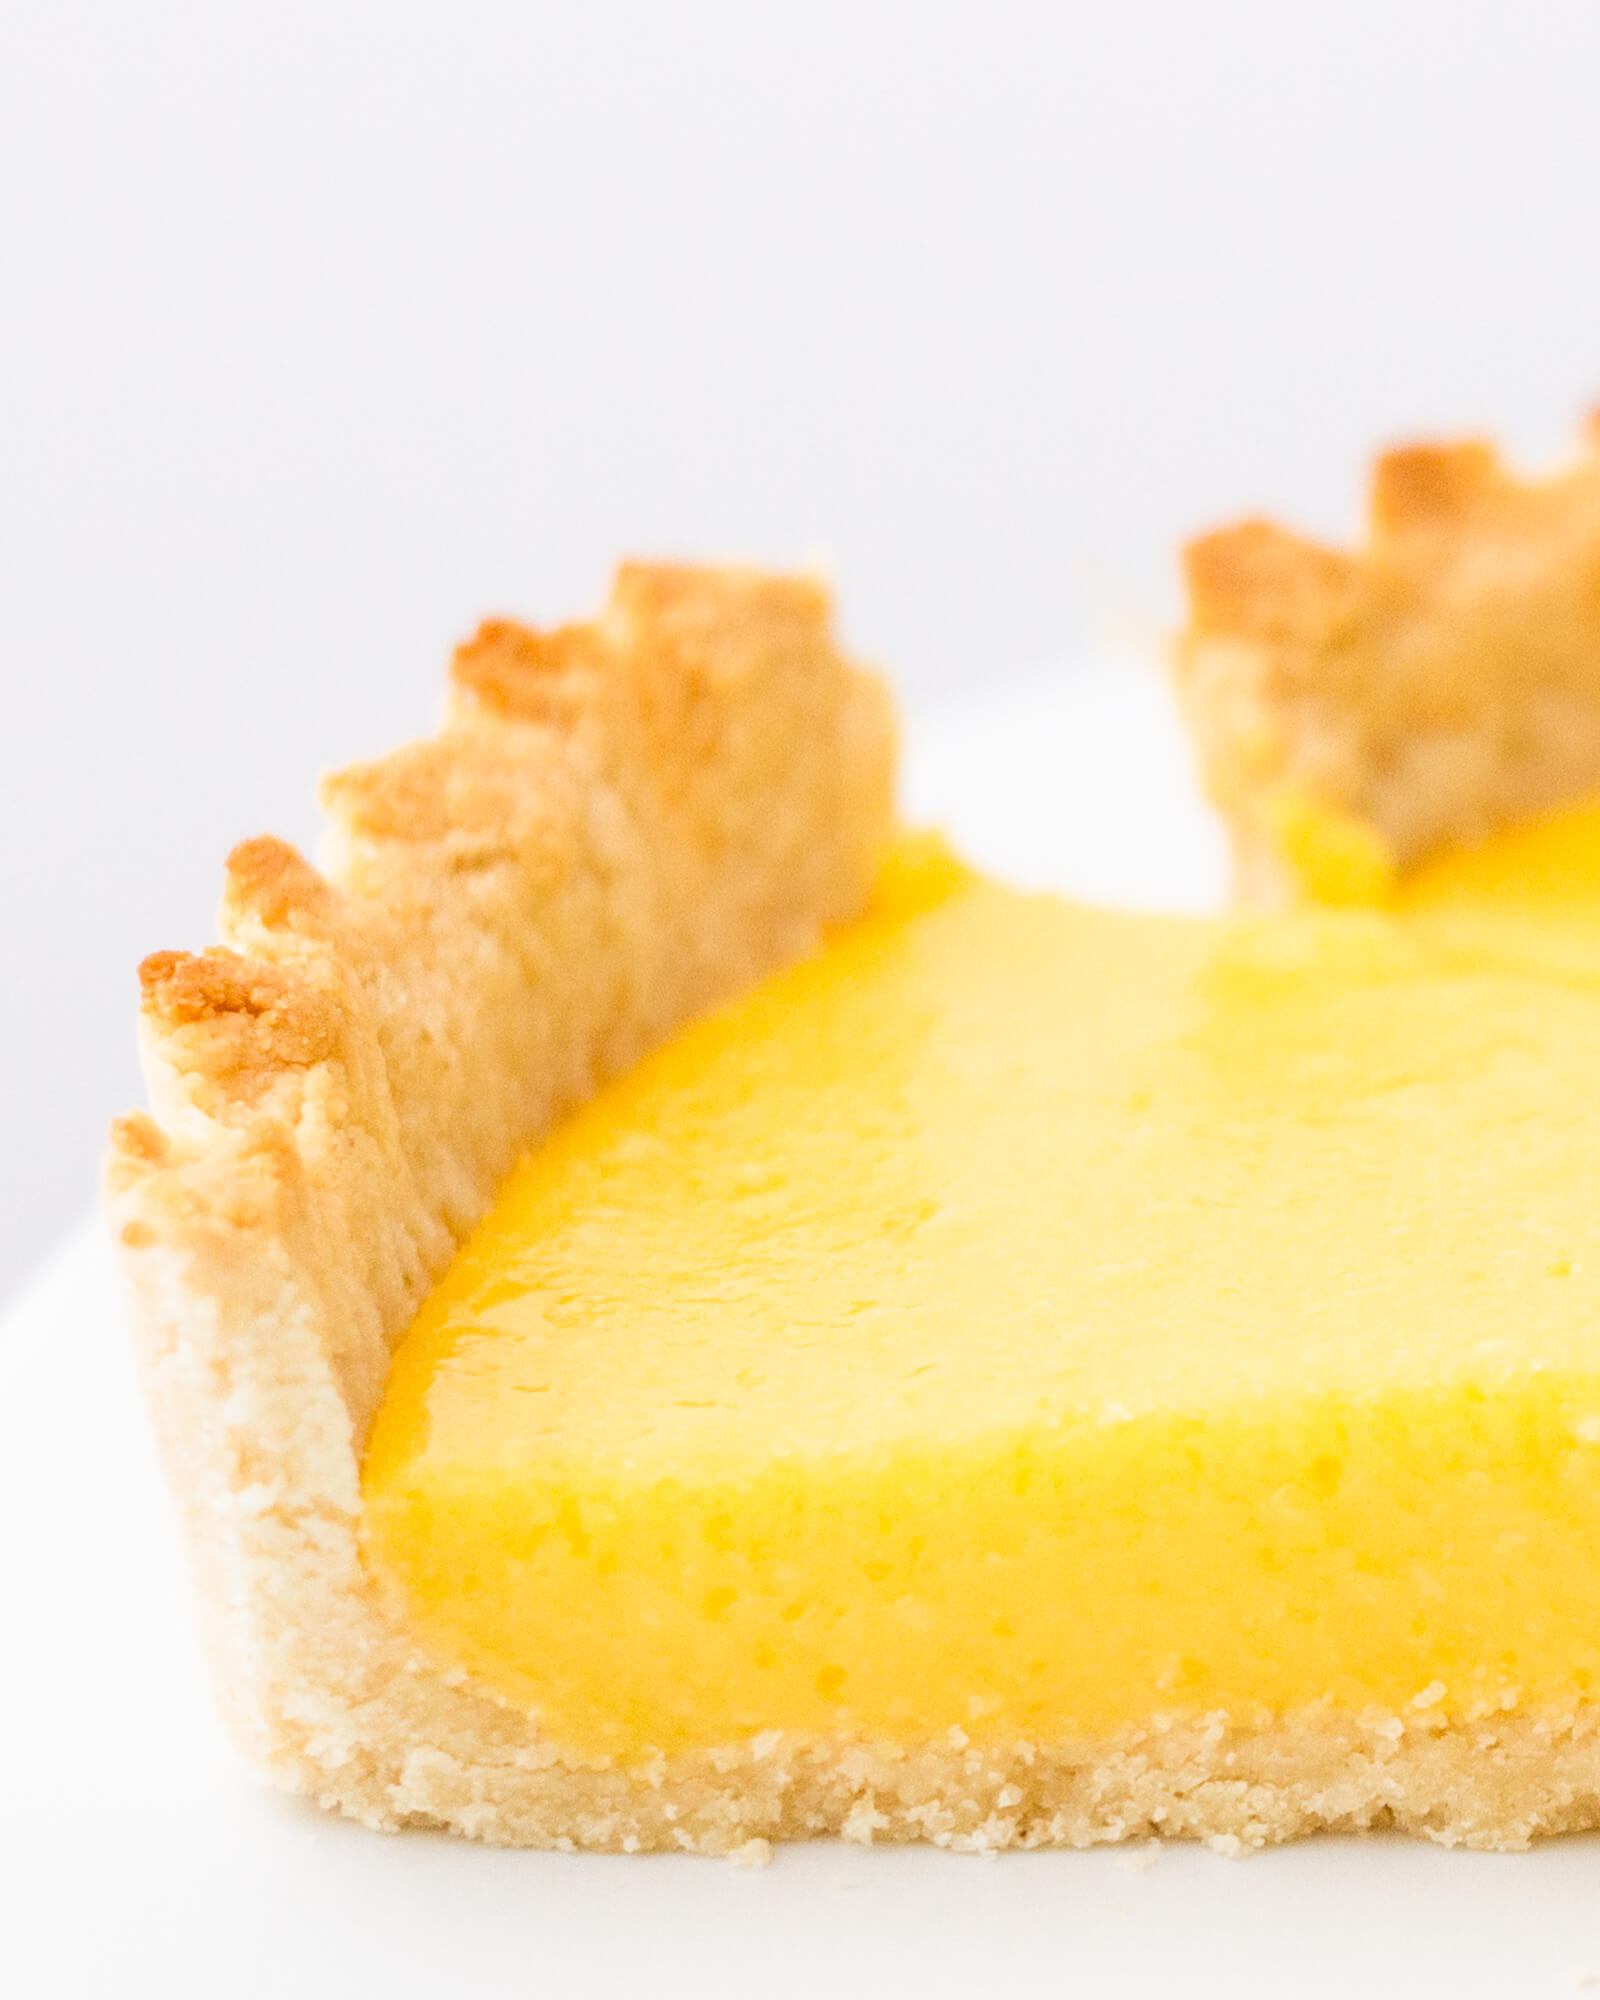 Slice of low carb tart, made from my sugar free lemon curd tart recipe with diabetic friendly shortbread crust on a white cake stand.